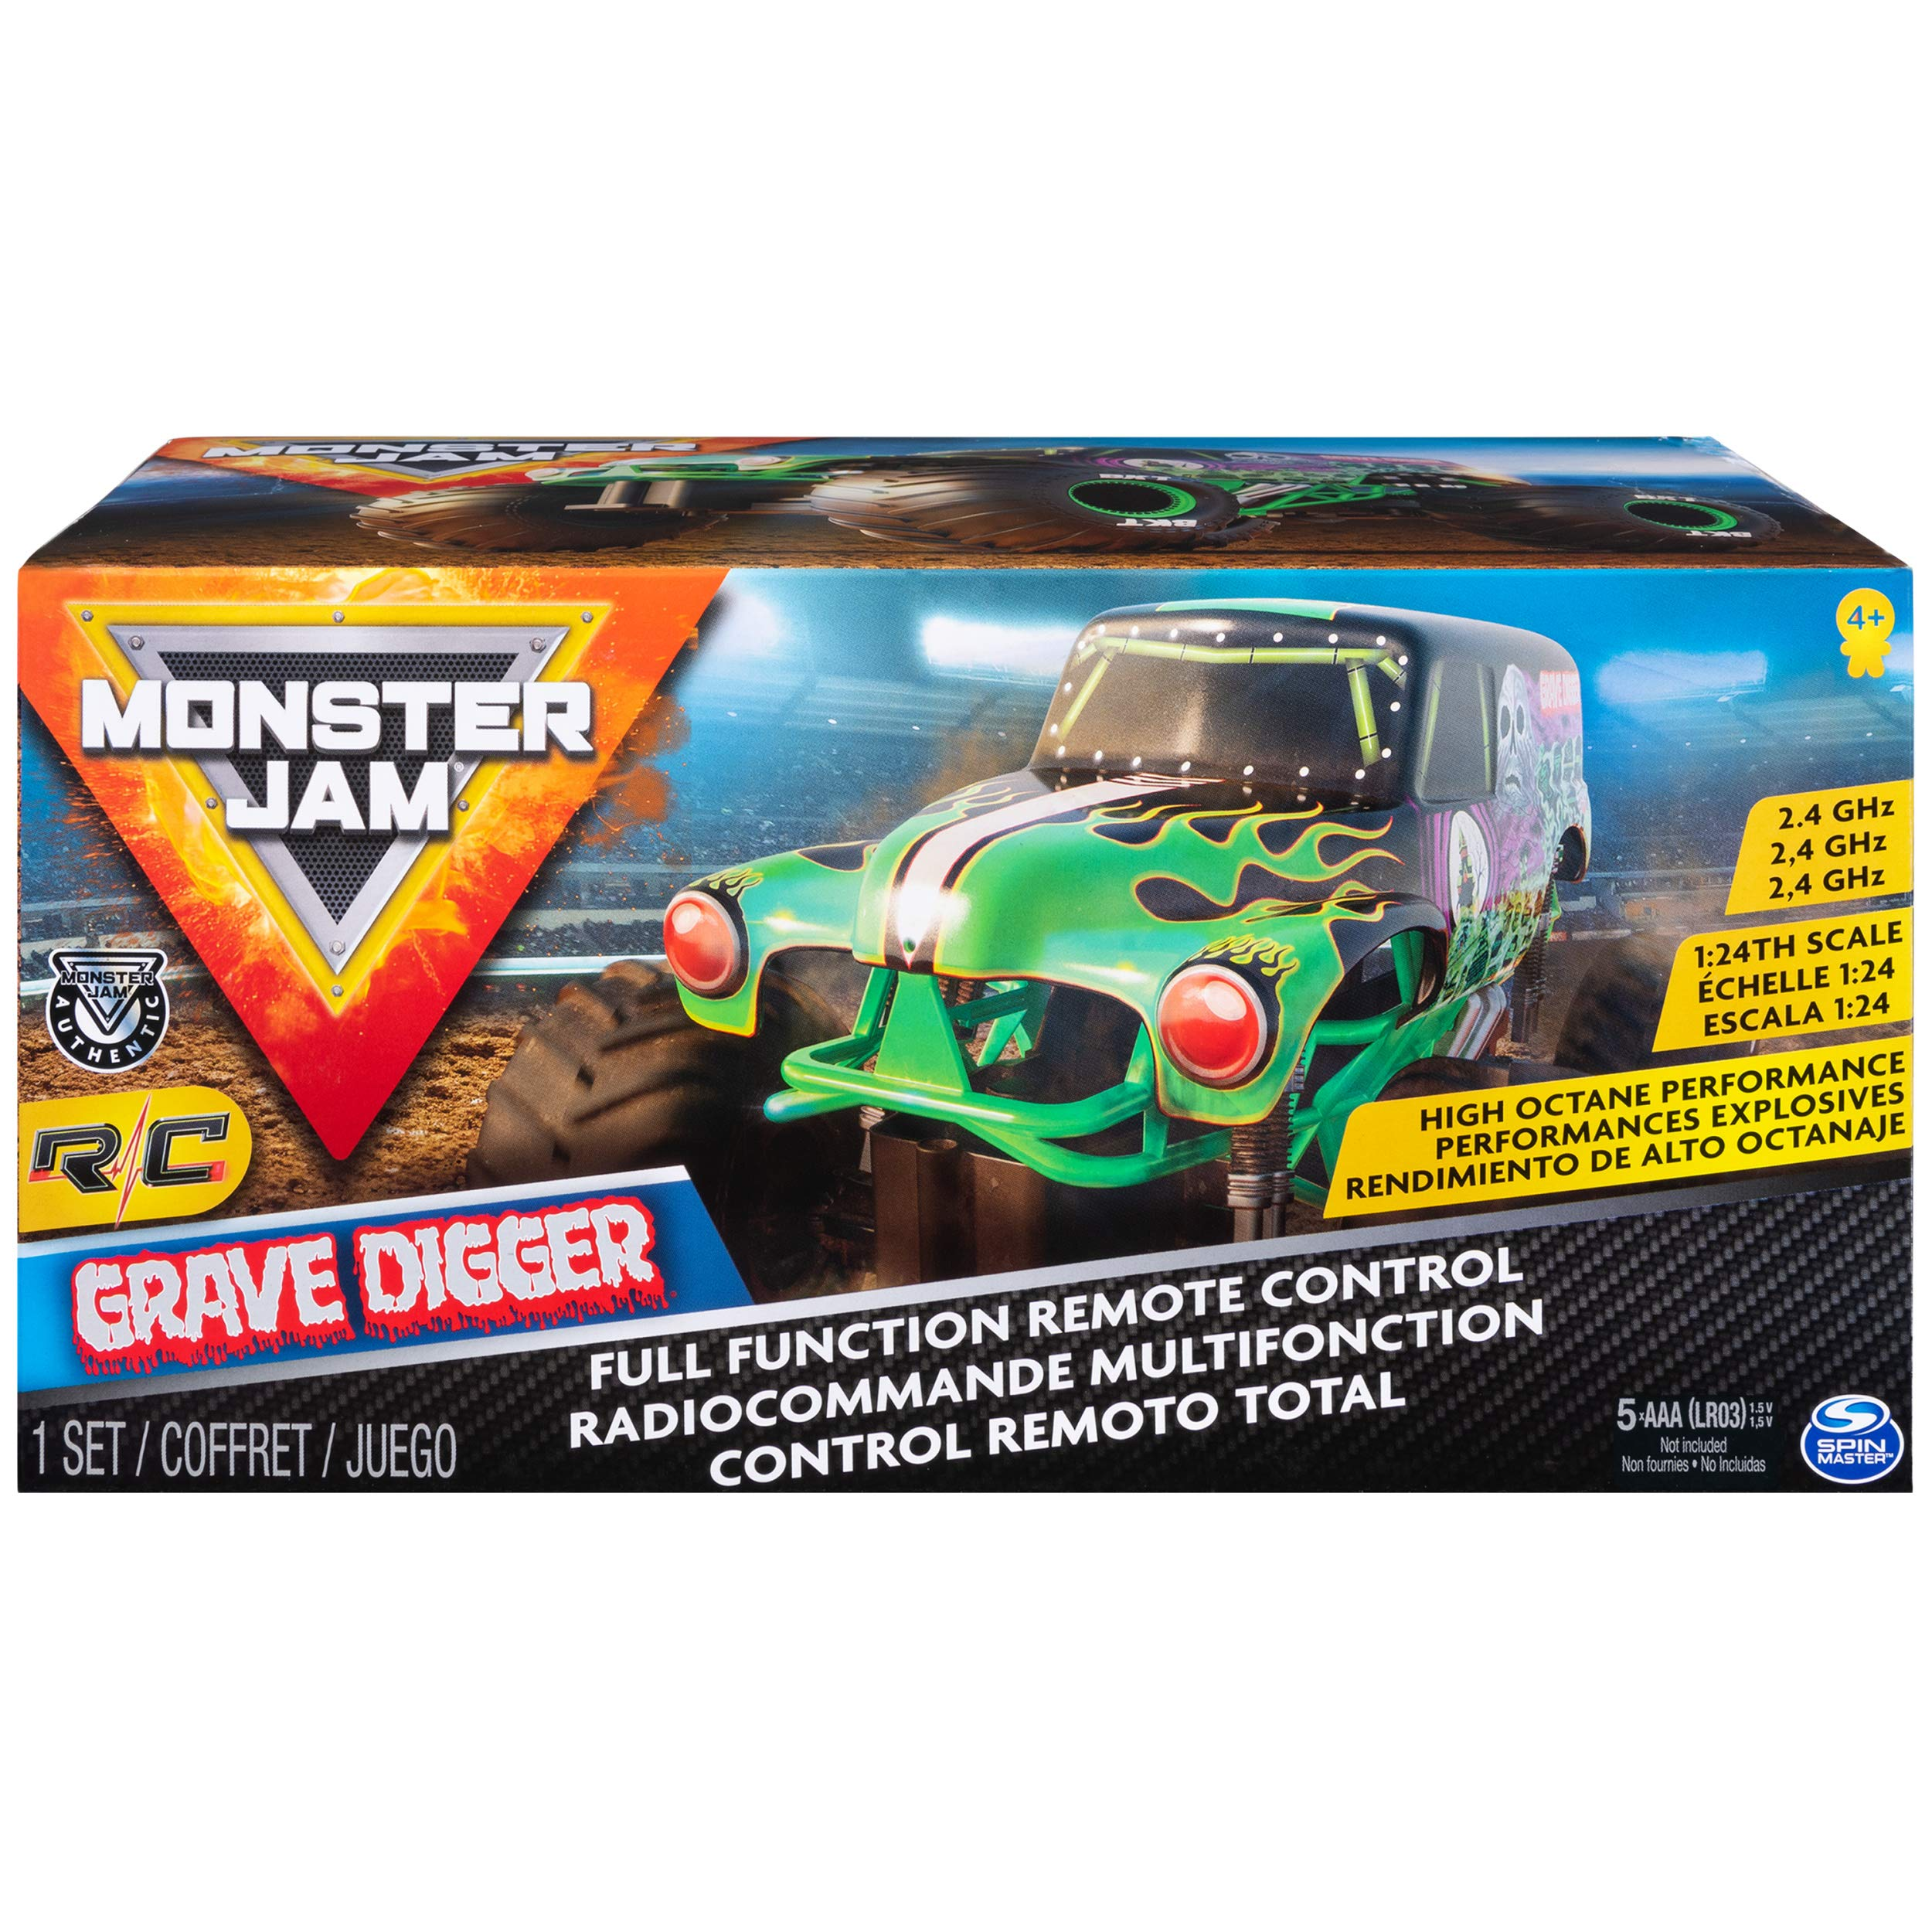 Monster Jam Official Grave Digger Remote Control Monster Truck, 1:24 Scale, 2.4 GHz, for Ages 4 and Up by Monster Jam (Image #2)